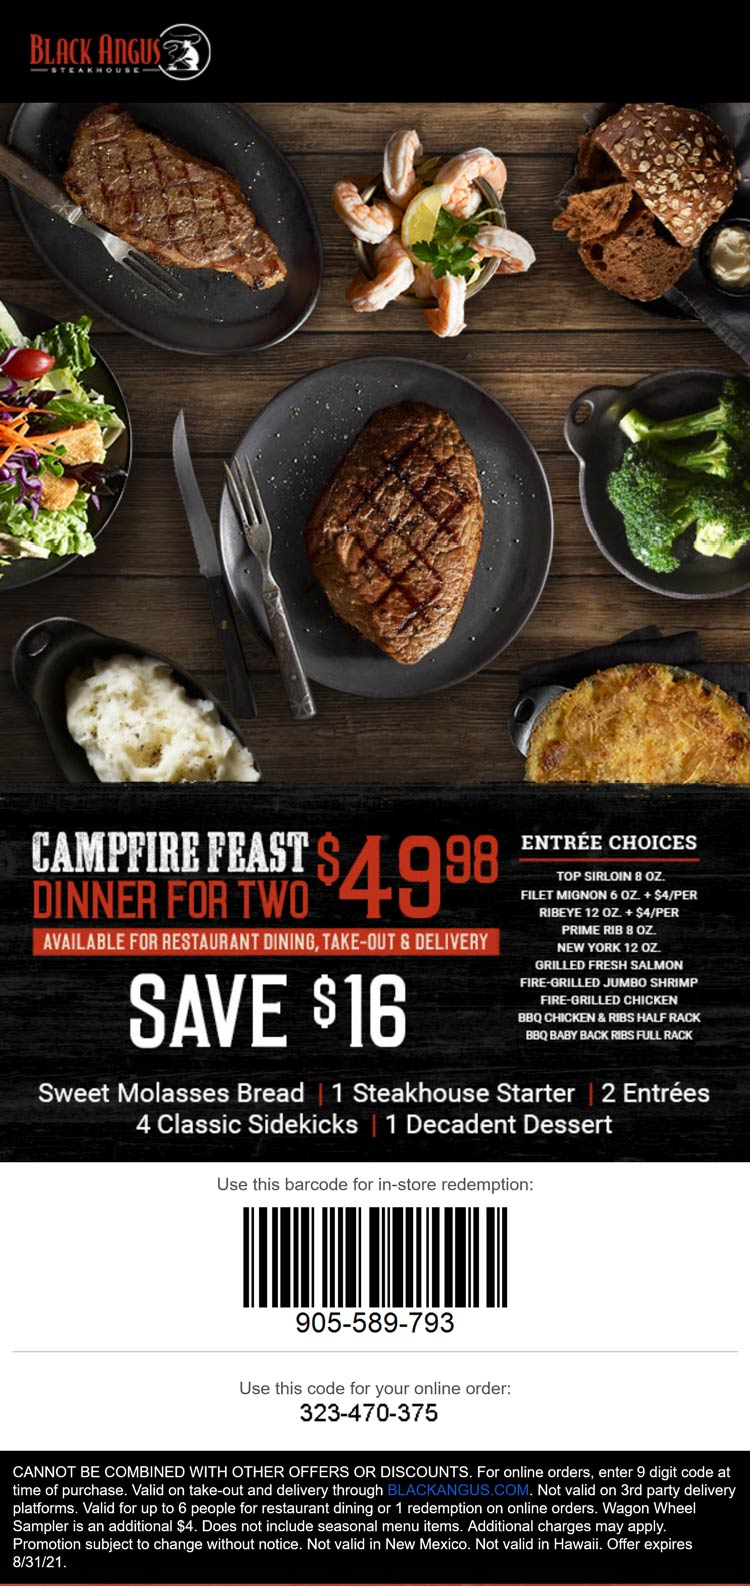 Black Angus restaurants Coupon  $16 off campfire feast dinner for 2 at Black Angus Steakhouse #blackangus